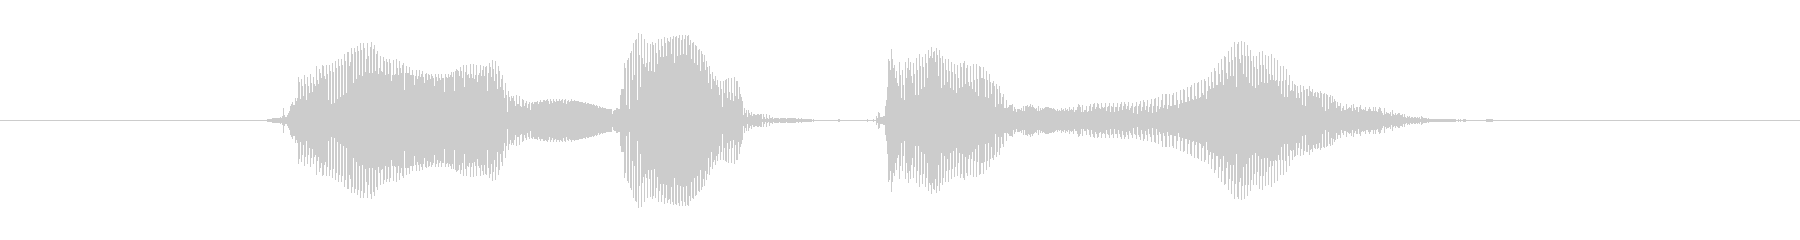 You did your best!'s unreproduced waveform